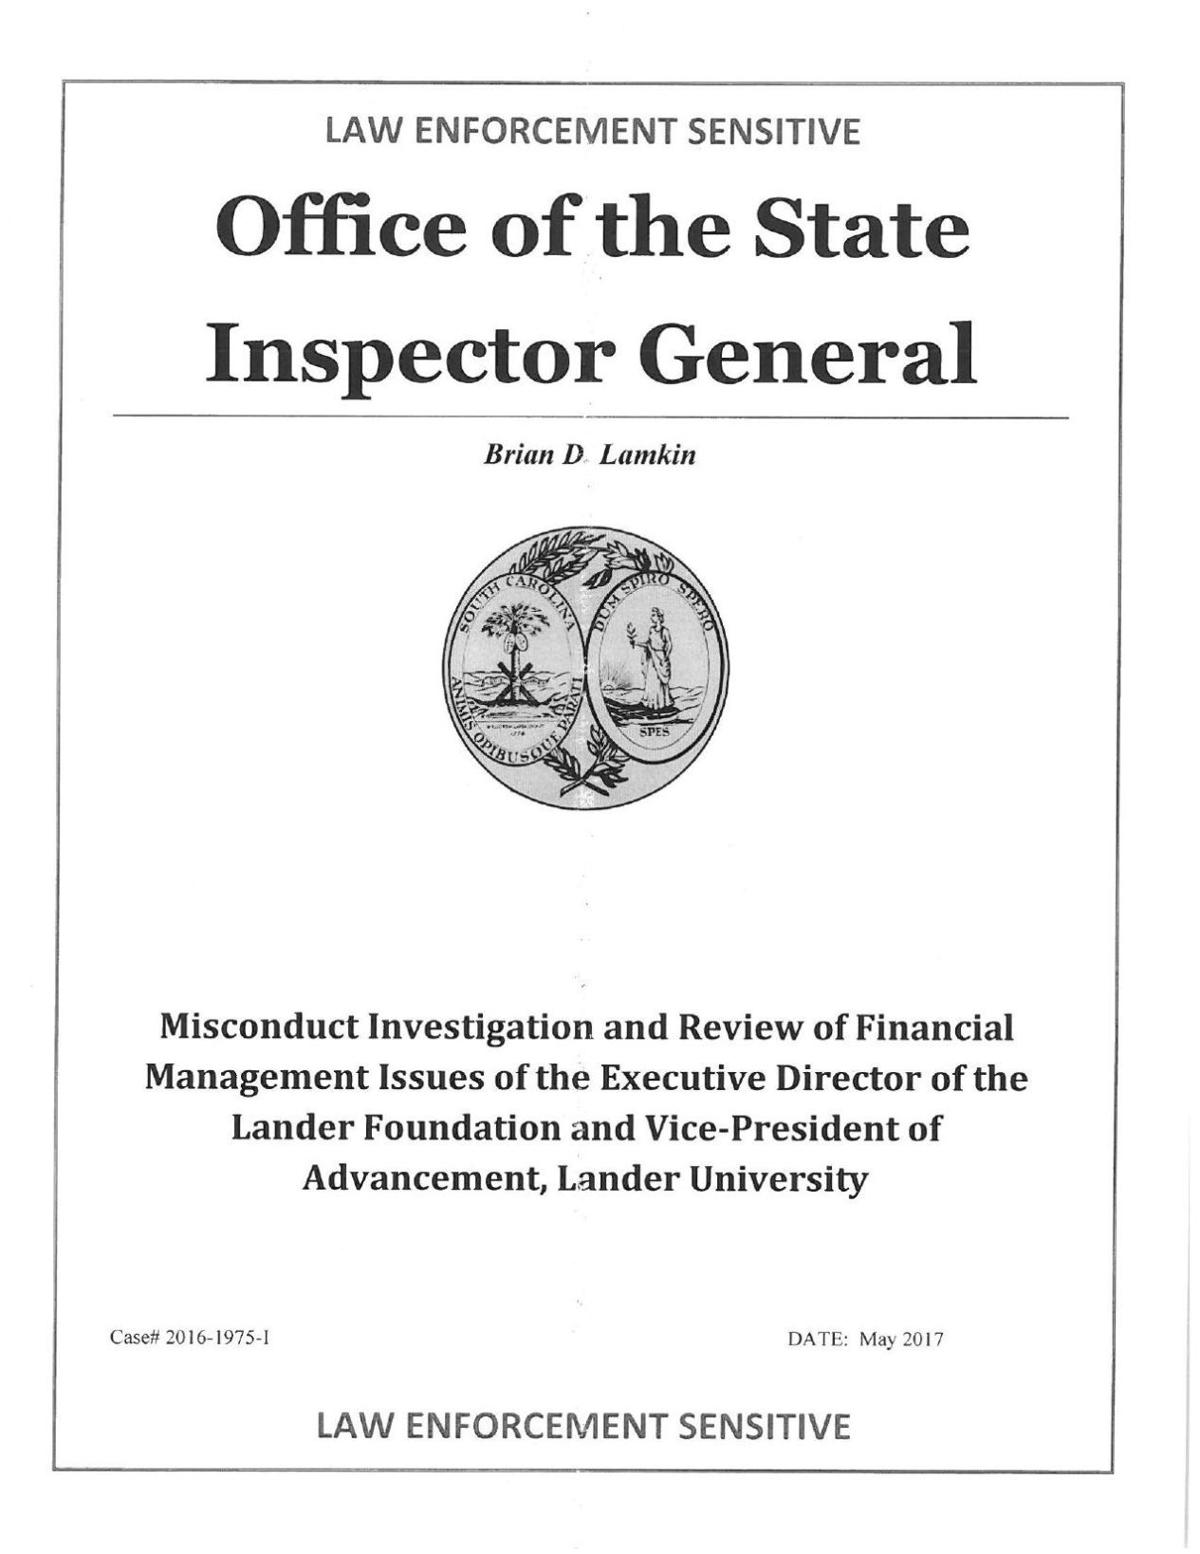 OIG misconduct investigation report | | indexjournal com